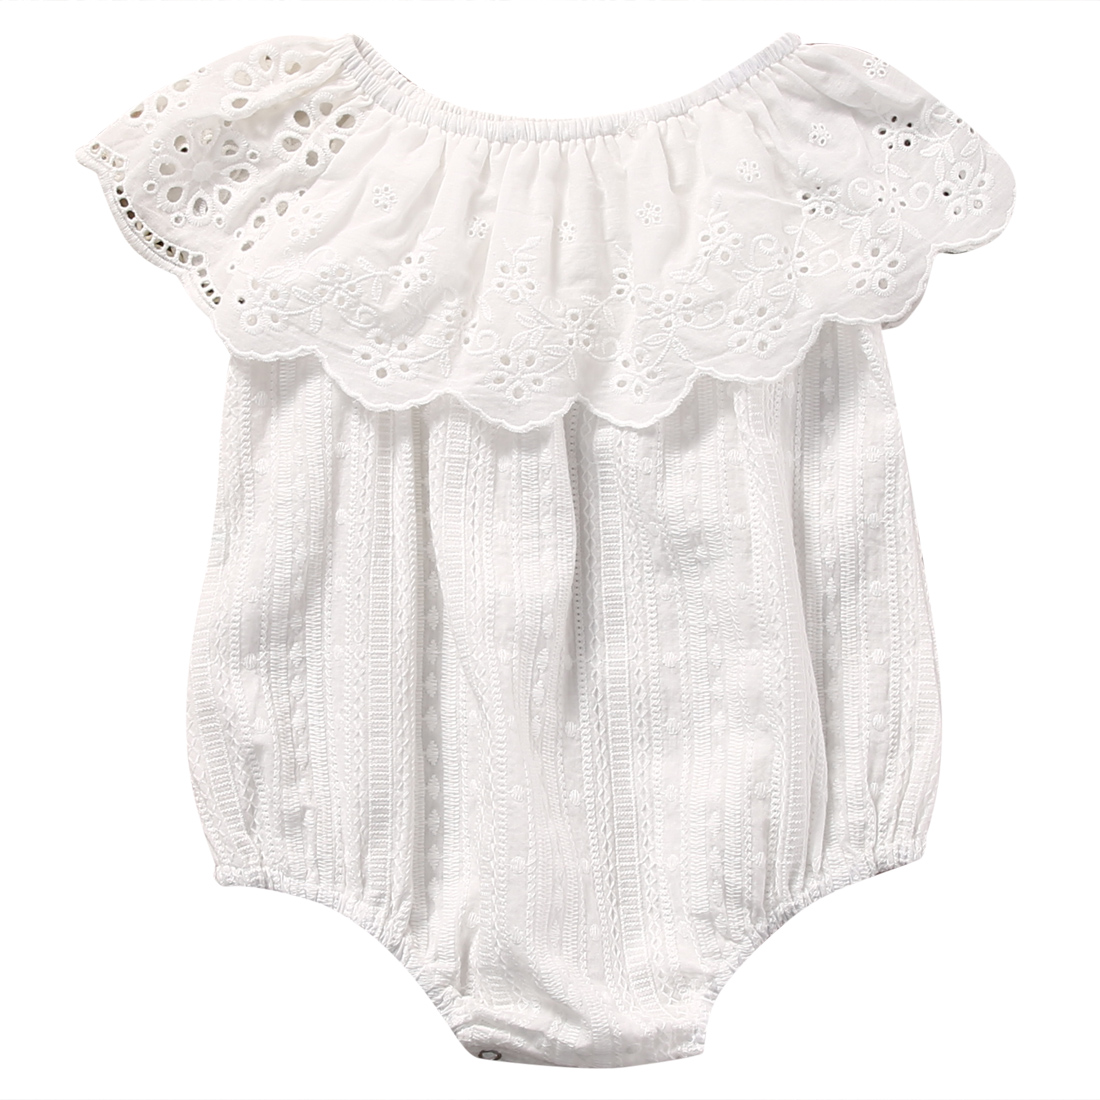 2017 Summer Newborn Baby Girl White Lace Romper Jumpsuit Floral Infant Clothes Outfit Sunsuit summer newborn infant baby girl romper short sleeve floral romper jumpsuit outfits sunsuit clothes